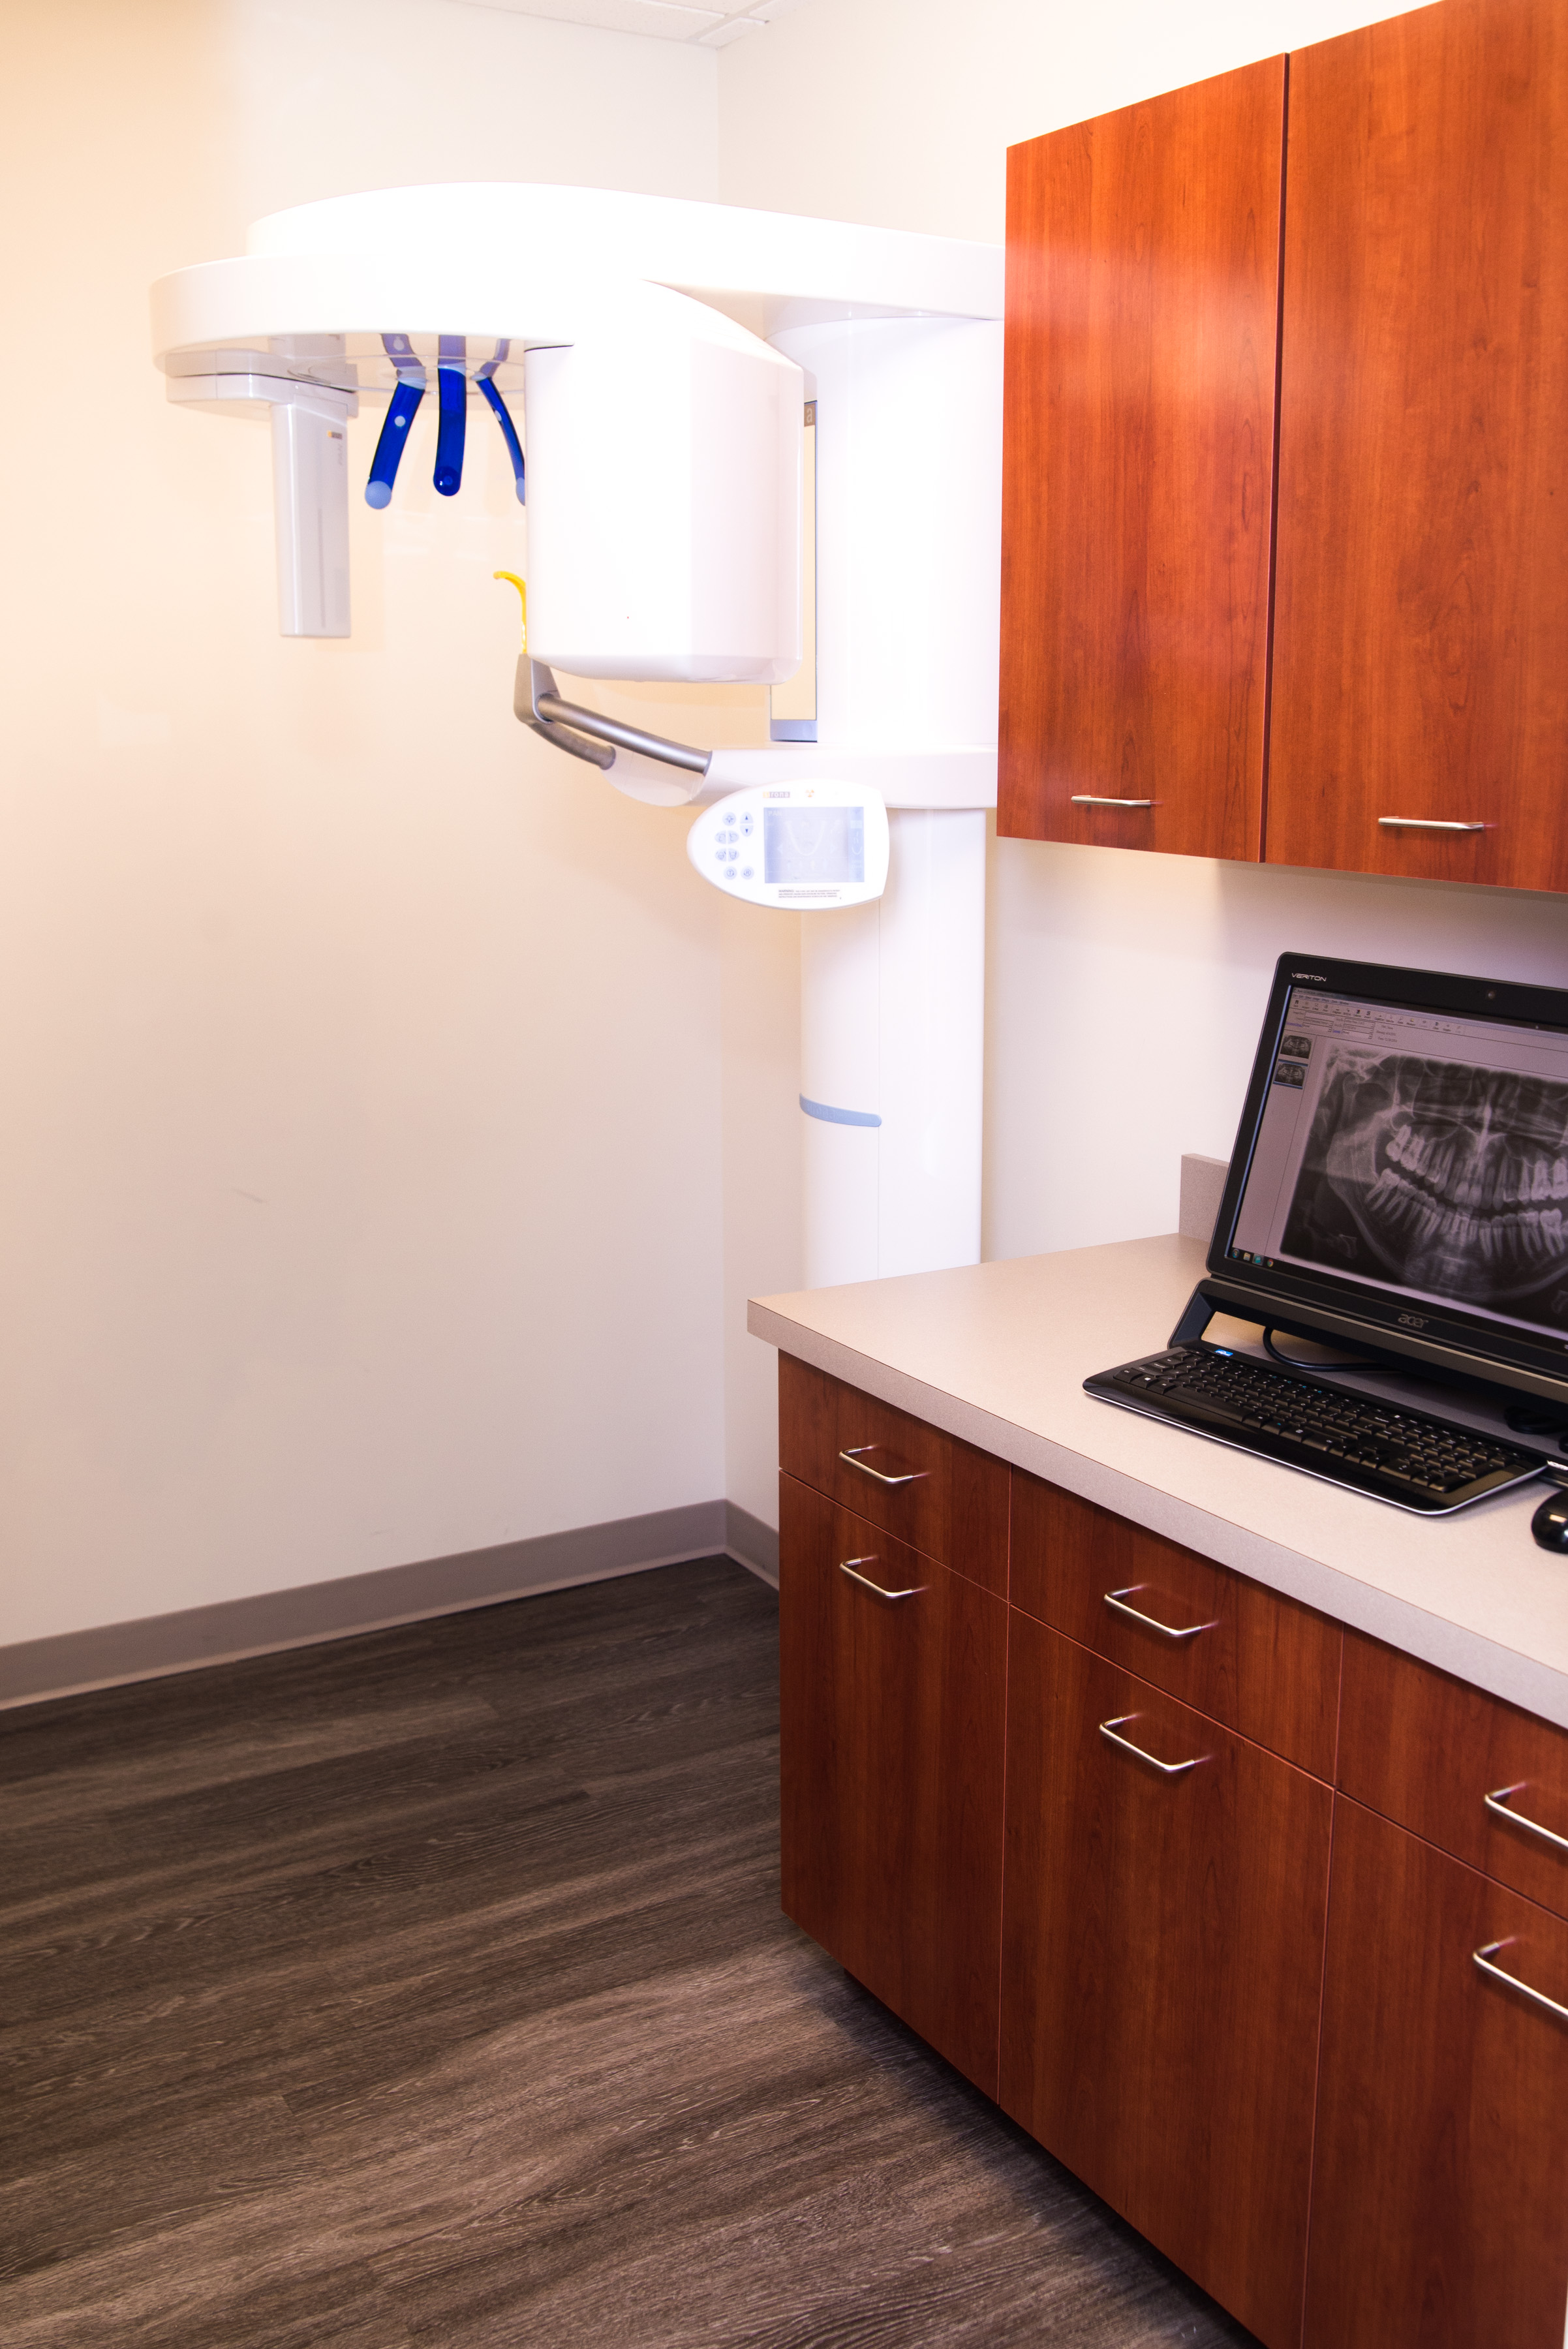 Medical Equipment At Peter Family Dentistry